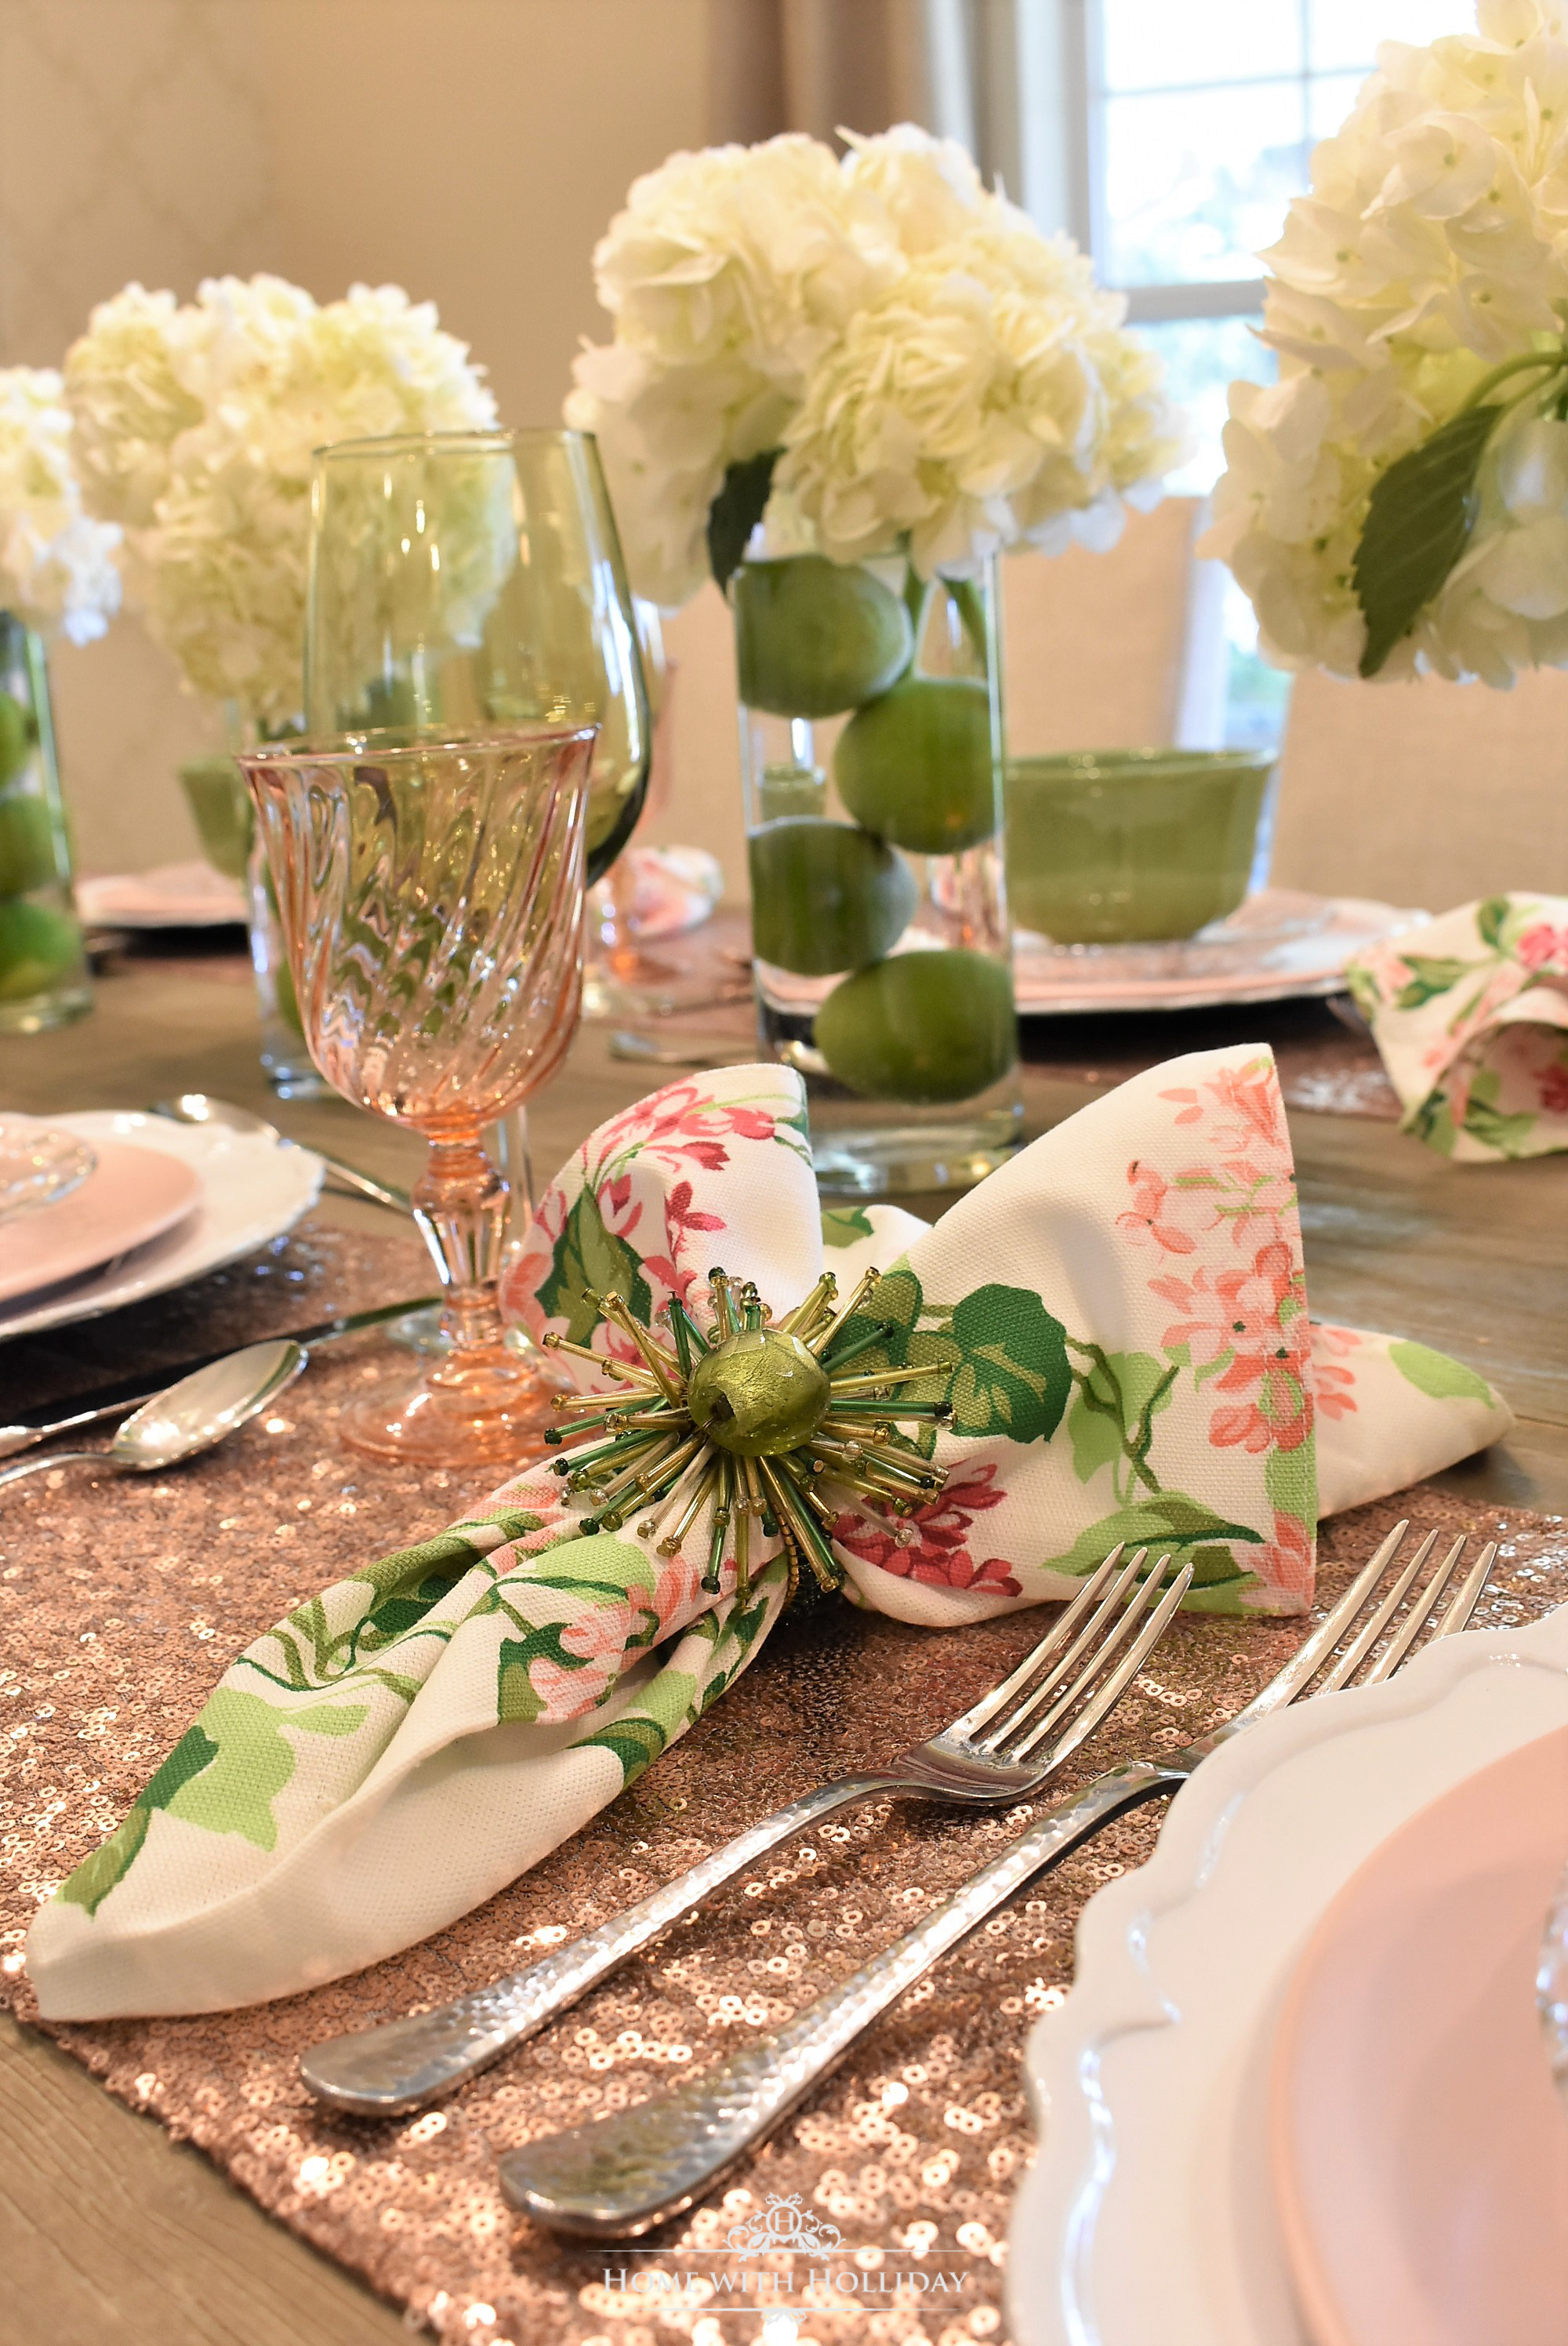 As you may know I enjoy including a bit of glam into most of my table settings and this one is no exception. I decided to reuse these blush pink table ... & Spring Table Setting for Mother\u0027s Day Luncheon - Home with Holliday